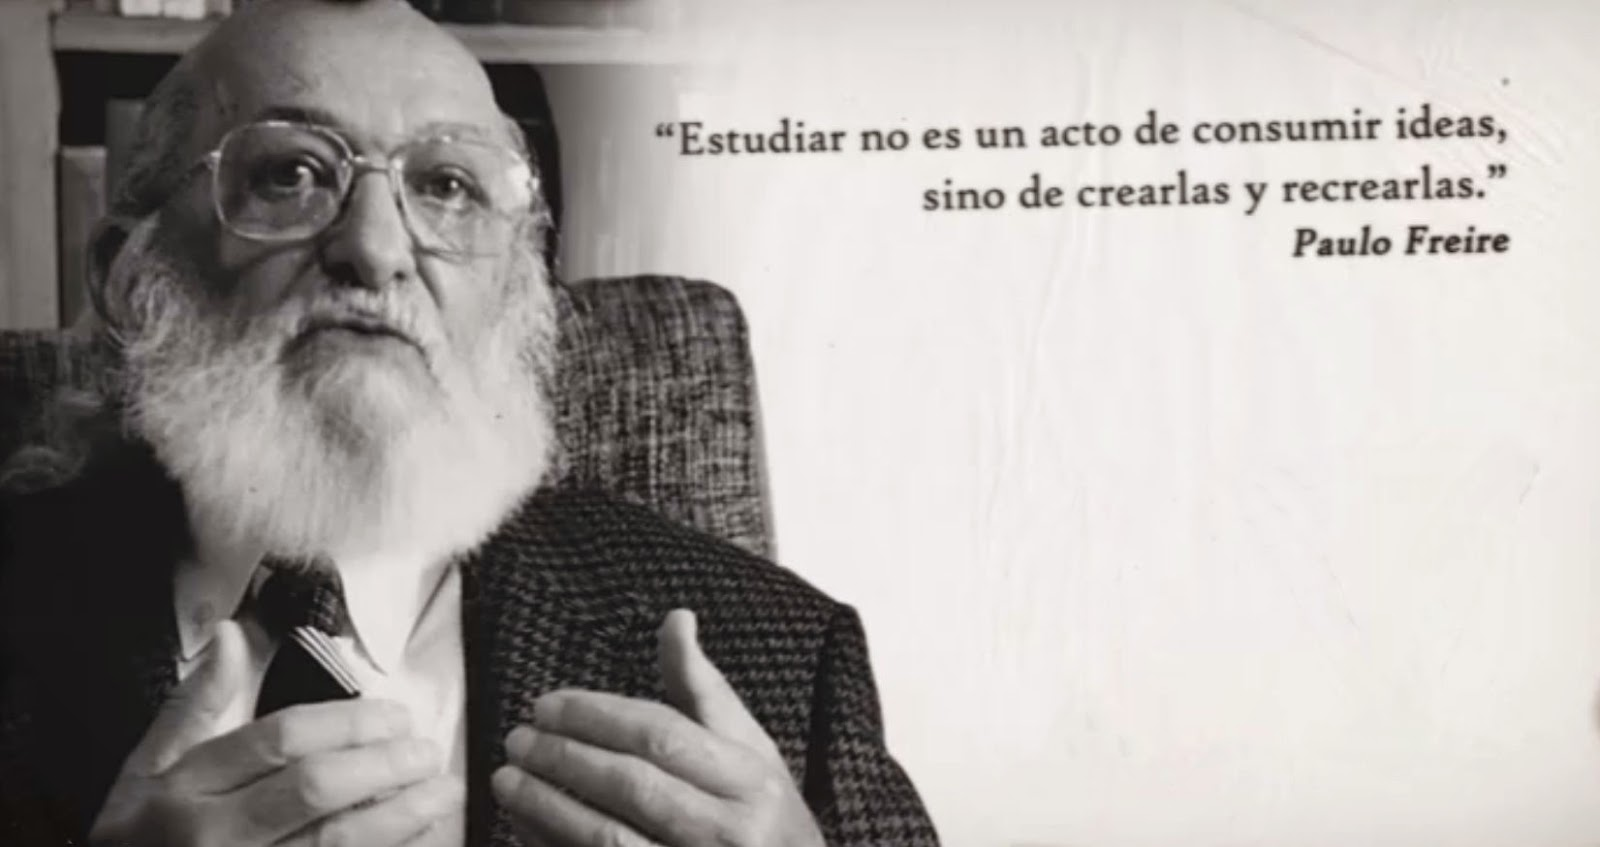 paulo freire banking concept of education essay fre edu freire developed an approach to education that links the identification of issues to positive action for change and development power policy and politics